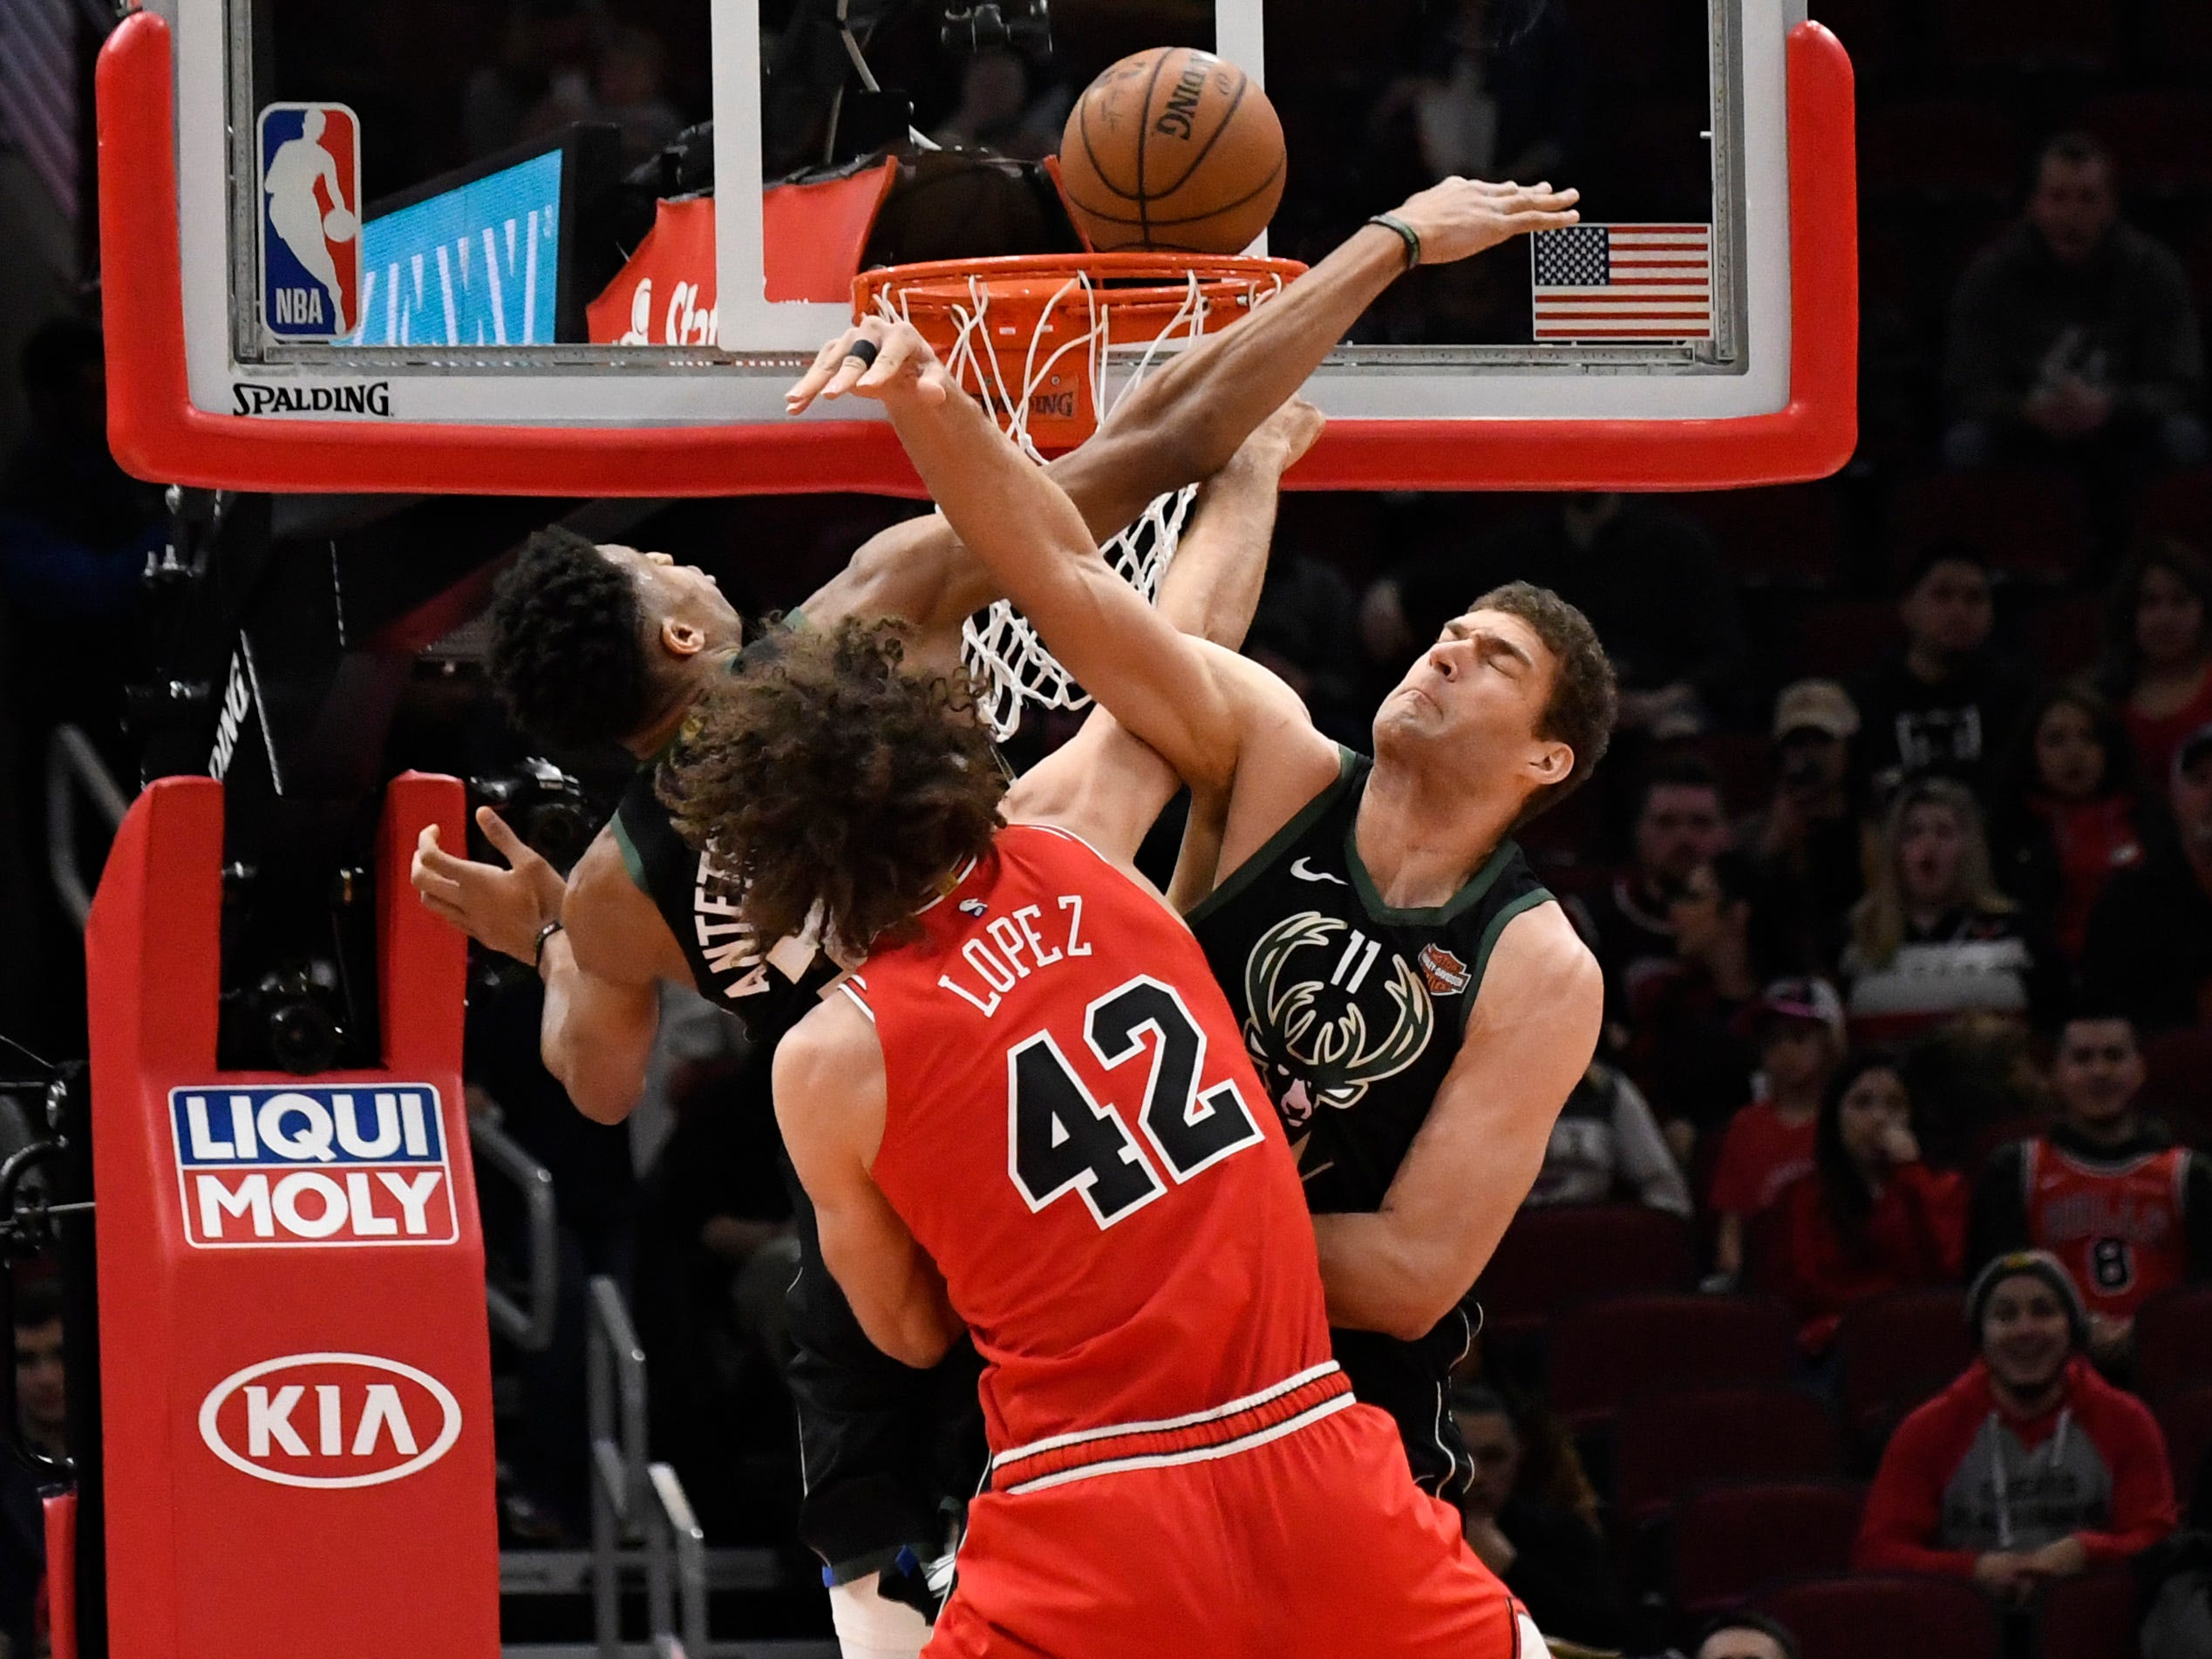 Bucks center Brook Lopez (right) blocks the shot of Bulls center Robin Lopez, his twin brother, as Giannis Antetokounmpo lends support during the first half Monday.